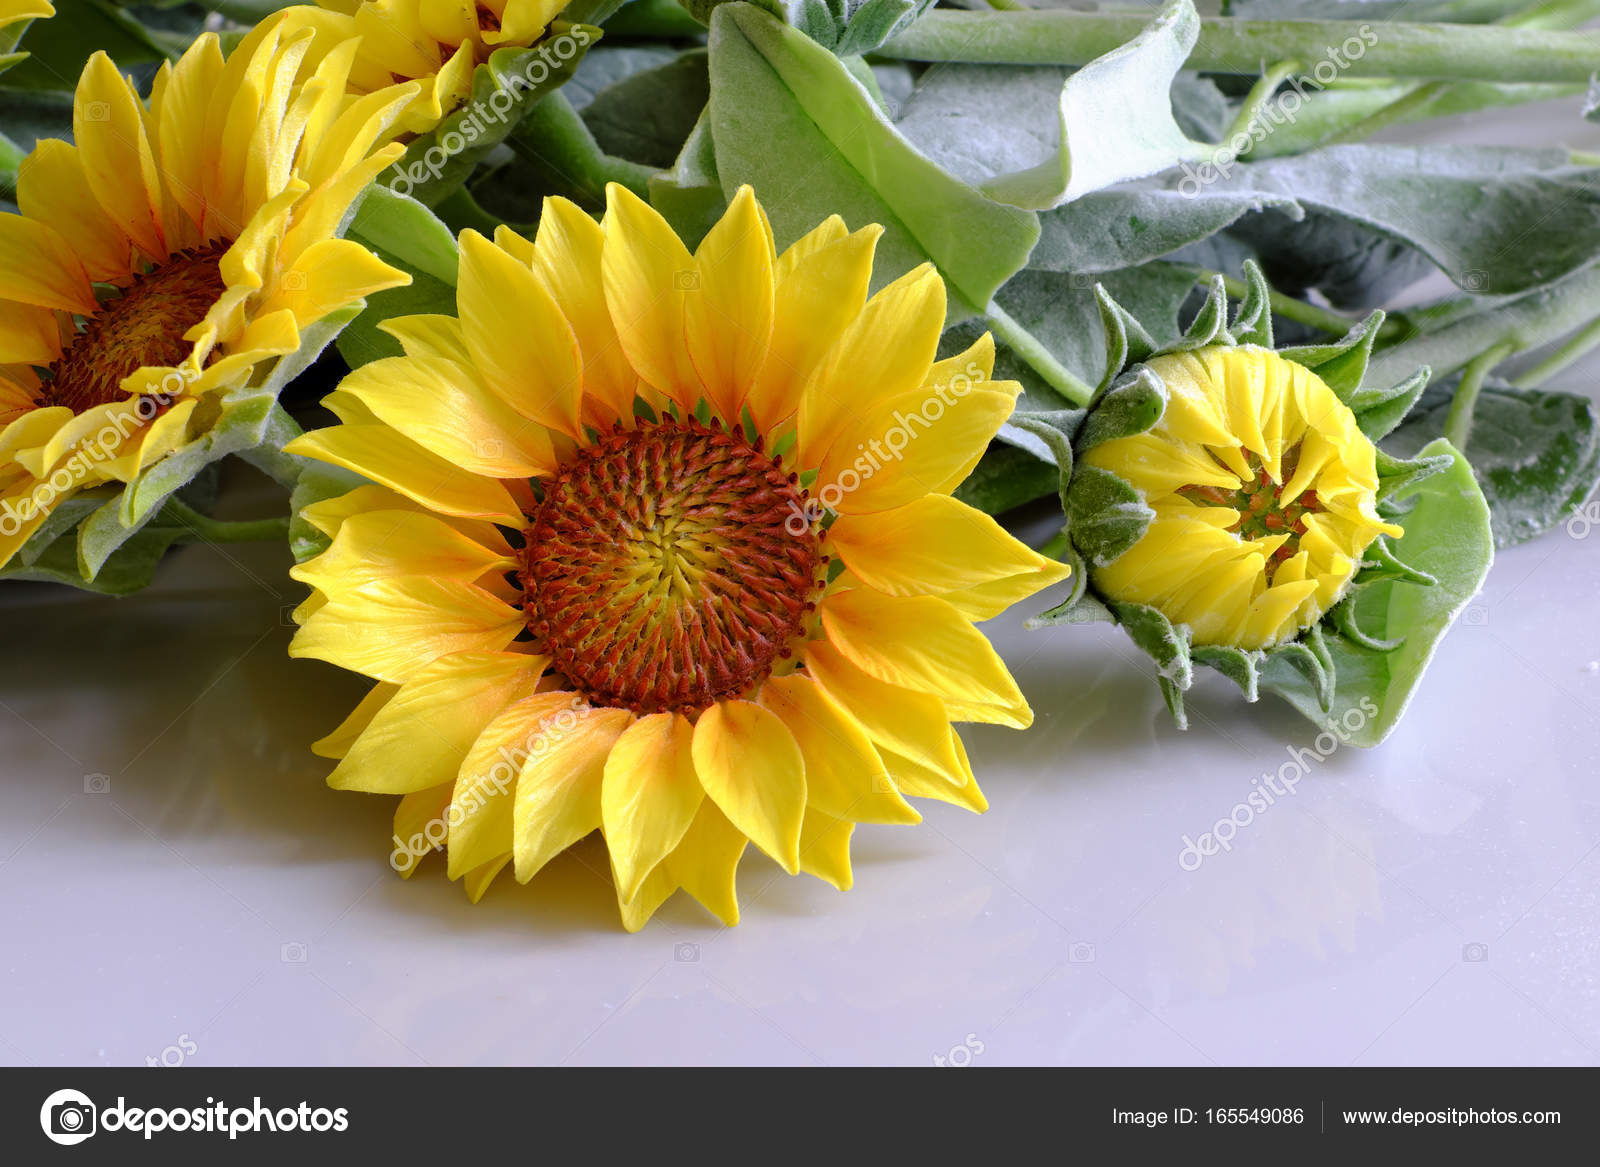 Clay flower sunflower bouquet stock photo xuanhuongho 165549086 amazing clay flower handmade product for home decor sunflower bouquet bloom in yellow and green leaf on white background beautiful artificial flower izmirmasajfo Images